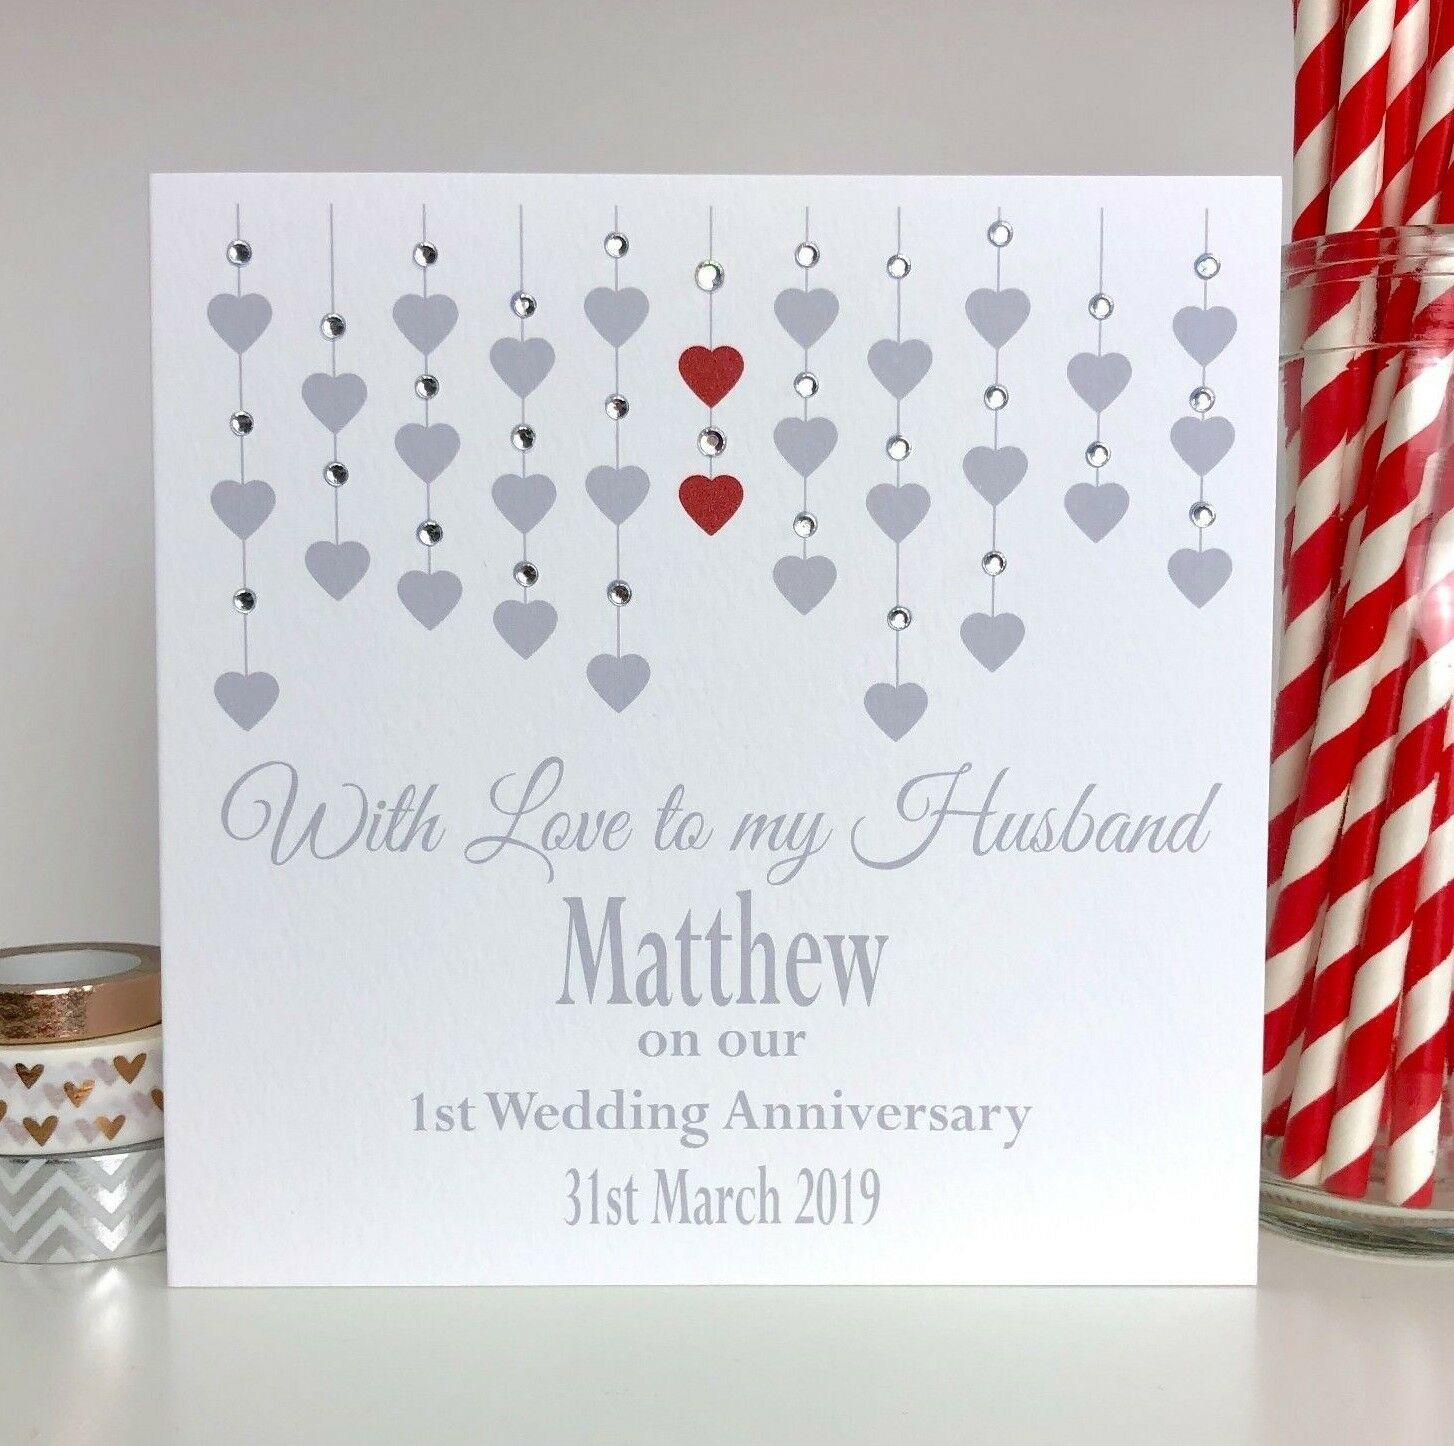 Personalised Handmade Wedding Anniversary Card Husband Wife 1st First 10th 25th 1 Of 1free Shipping